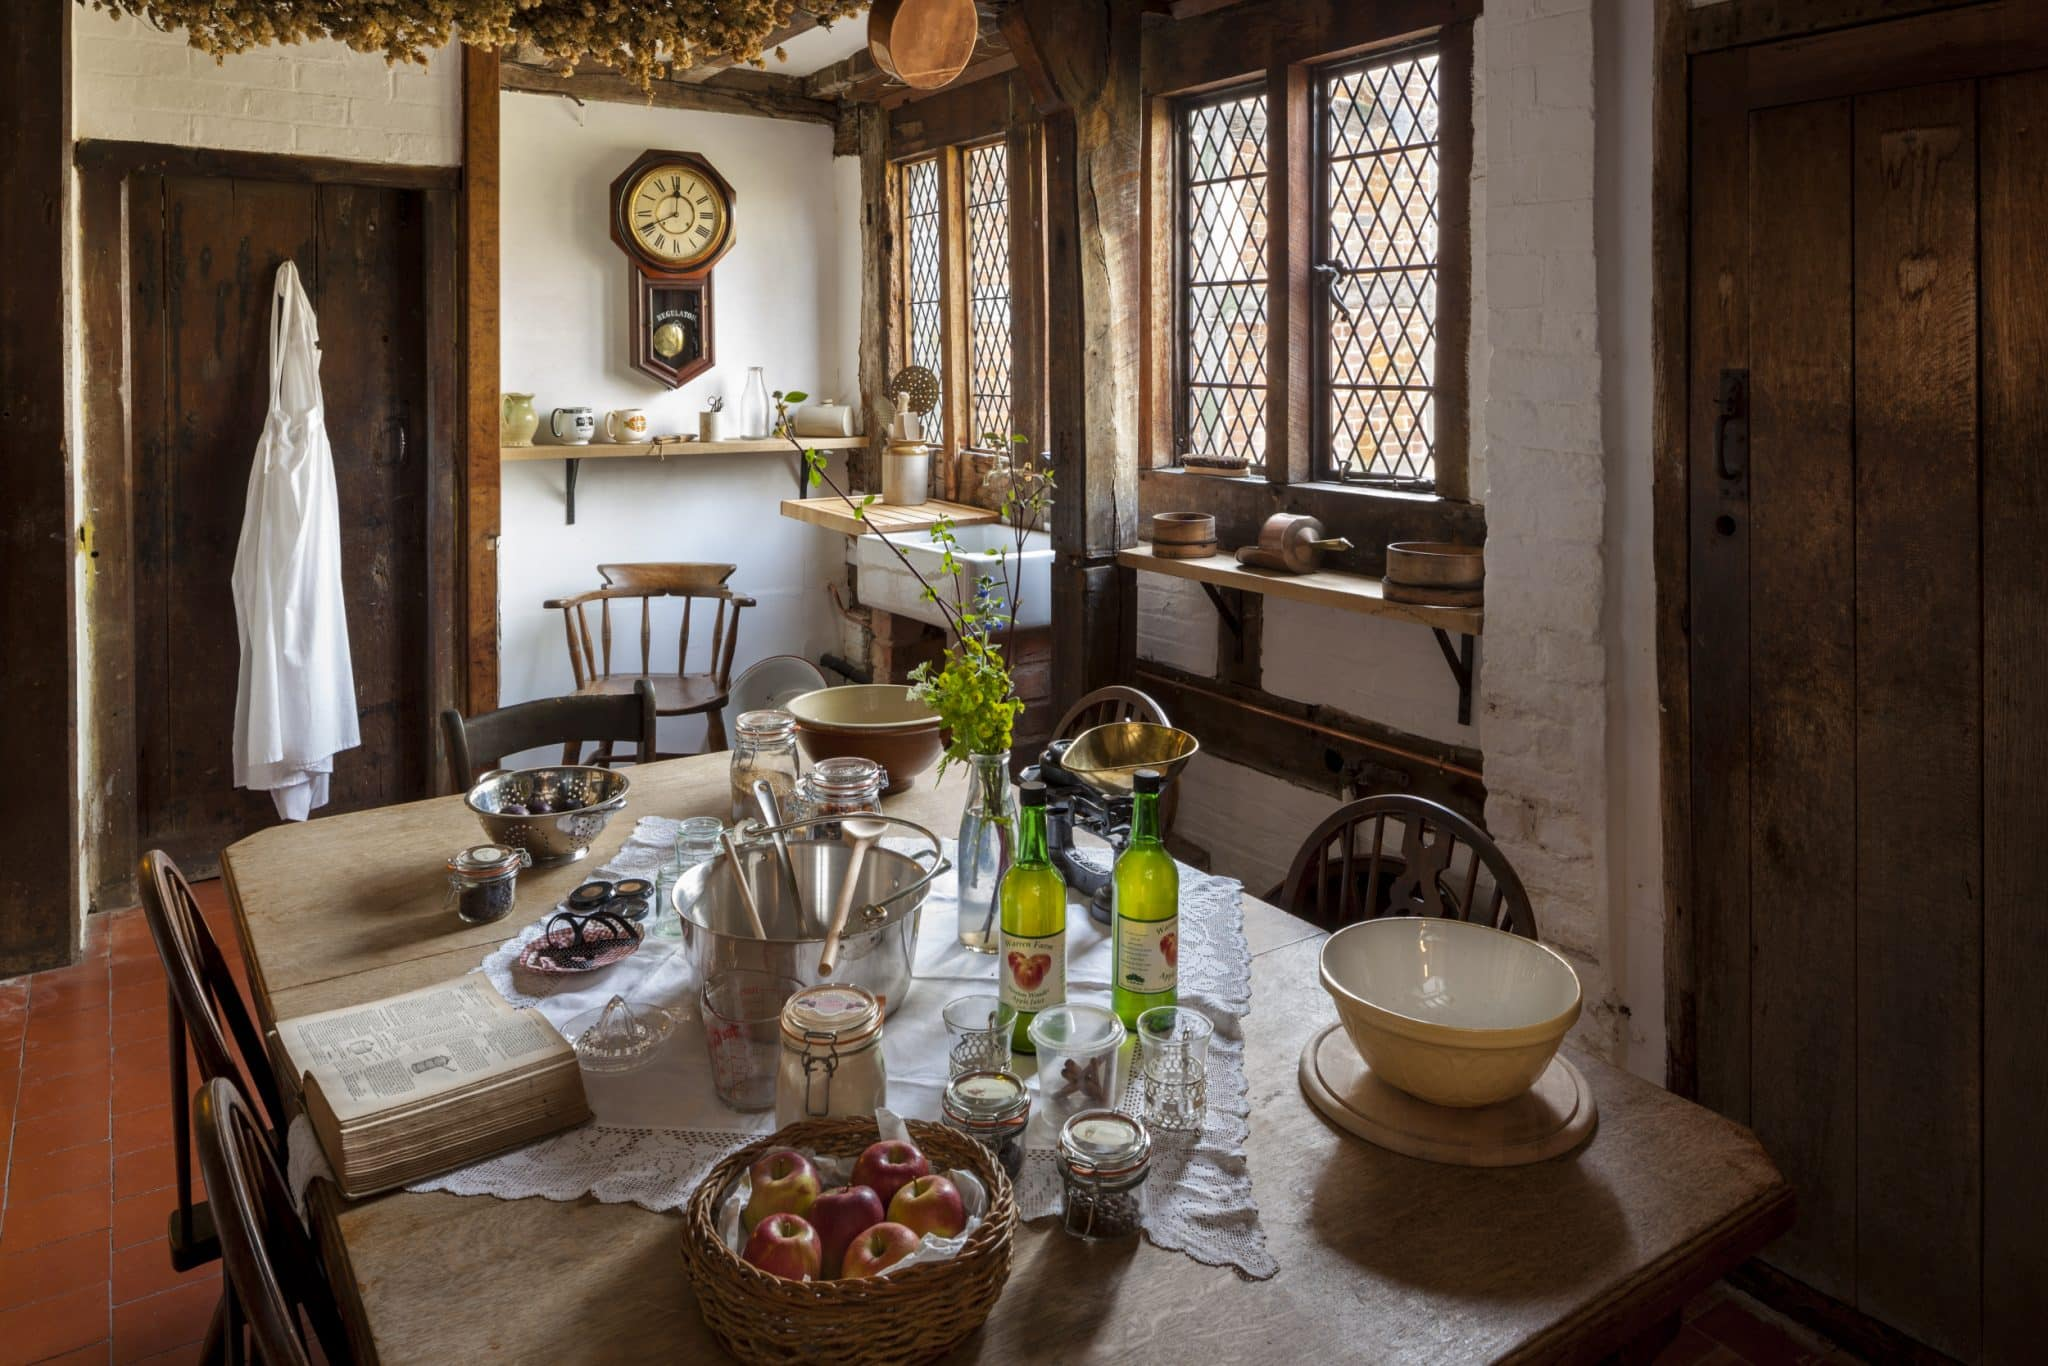 The Kitchen. Interior views of Brockhampton Estate